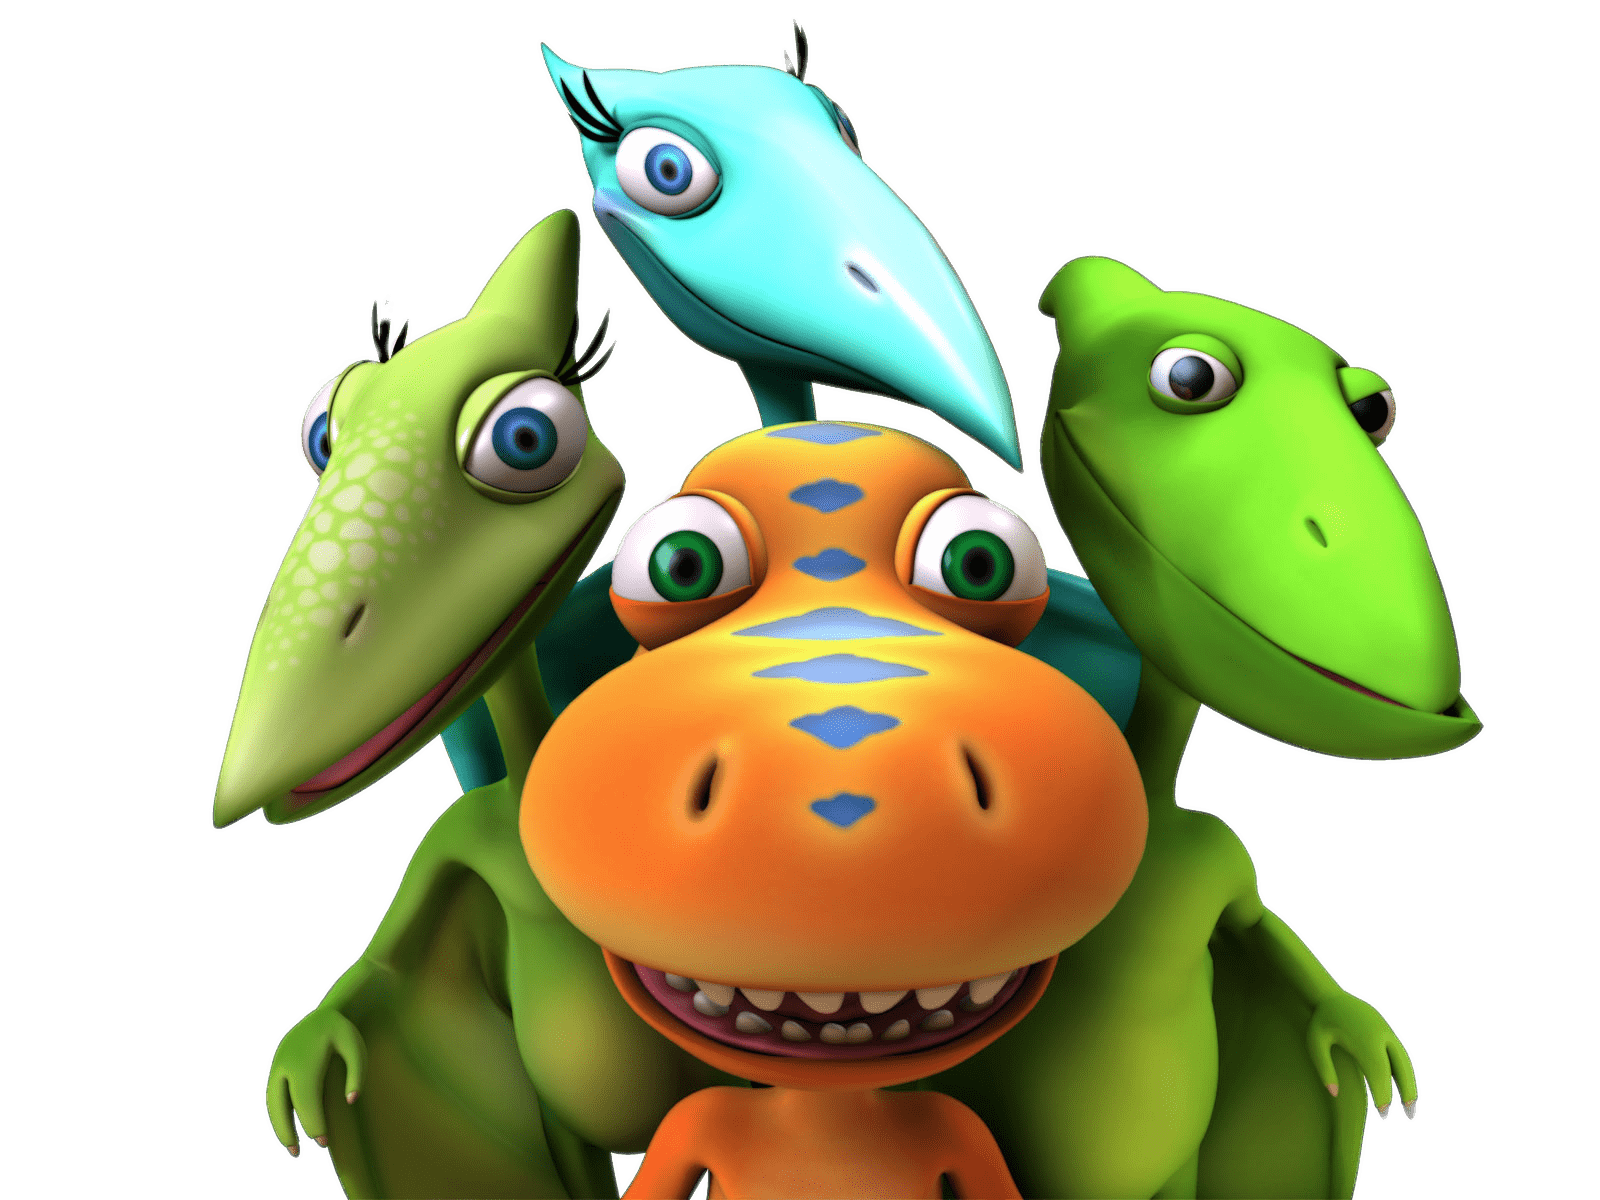 Dinosaur train and friends. Friendship clipart buddy